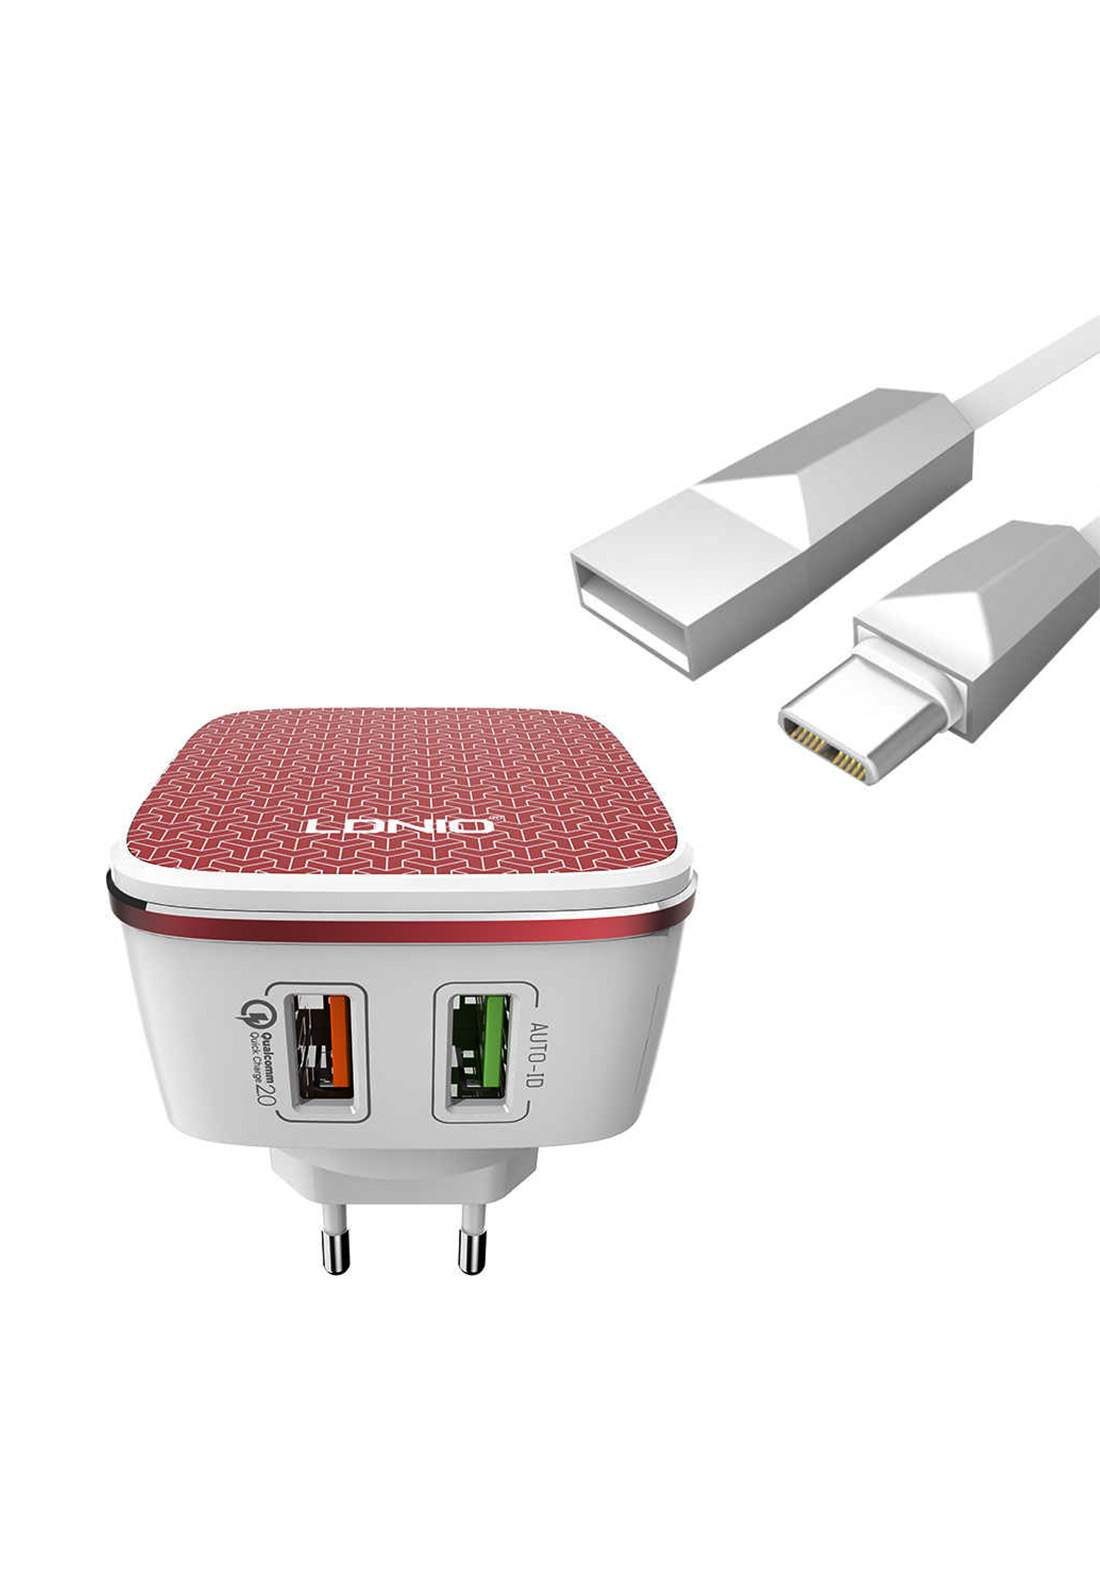 LDNIO A2405Q 2-Port USB Wall Charger and Lightning Cable شاحن